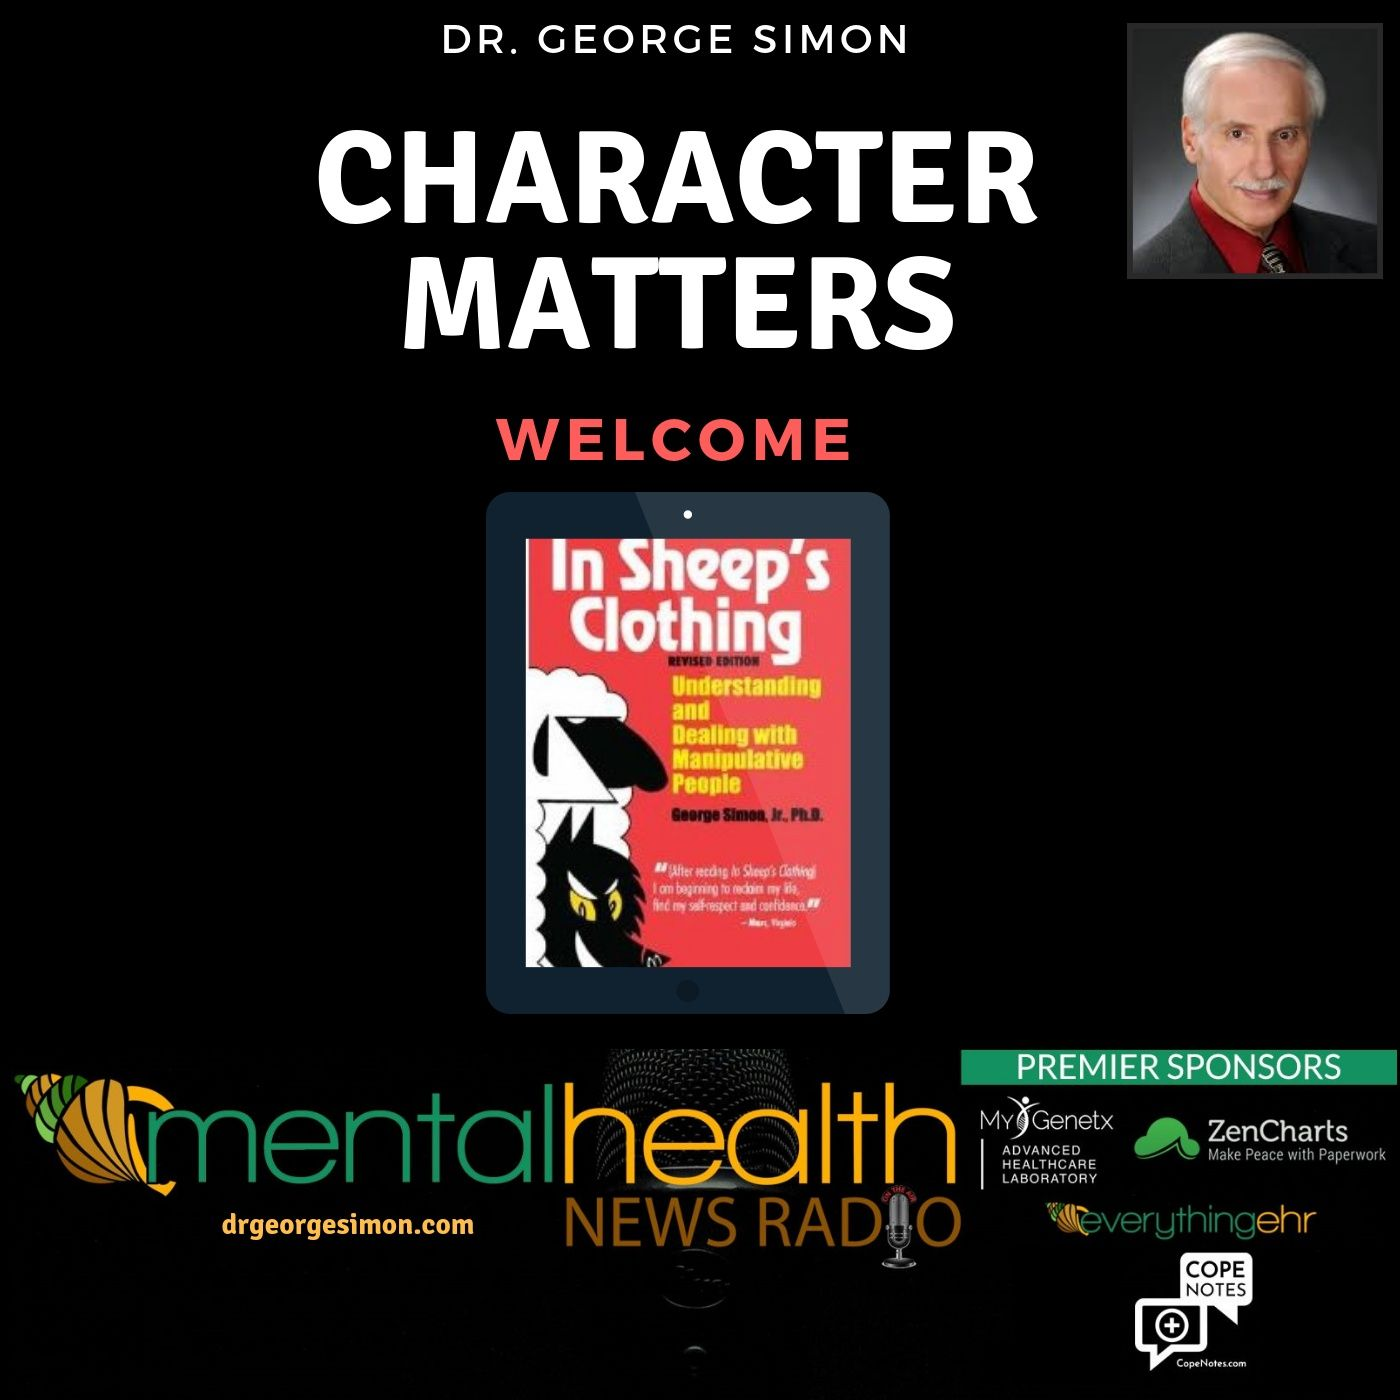 Mental Health News Radio - Character Matters with Dr. George Simon